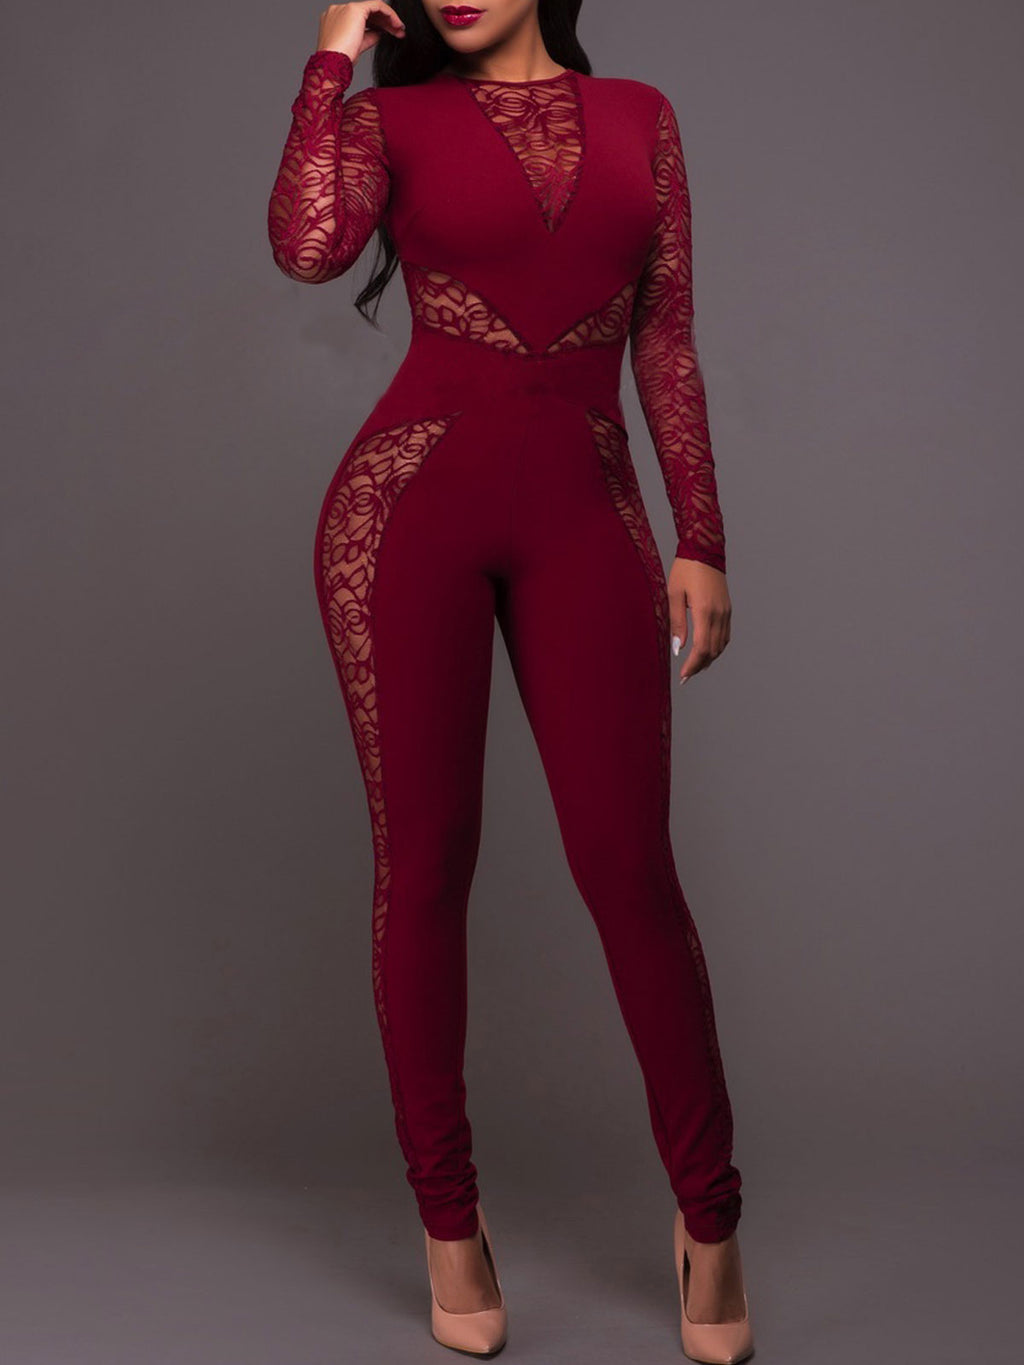 Basic Long Sleeve Sexy Mesh Overlay Lace Patchwork Skinny Jumpsuit Rikkishop